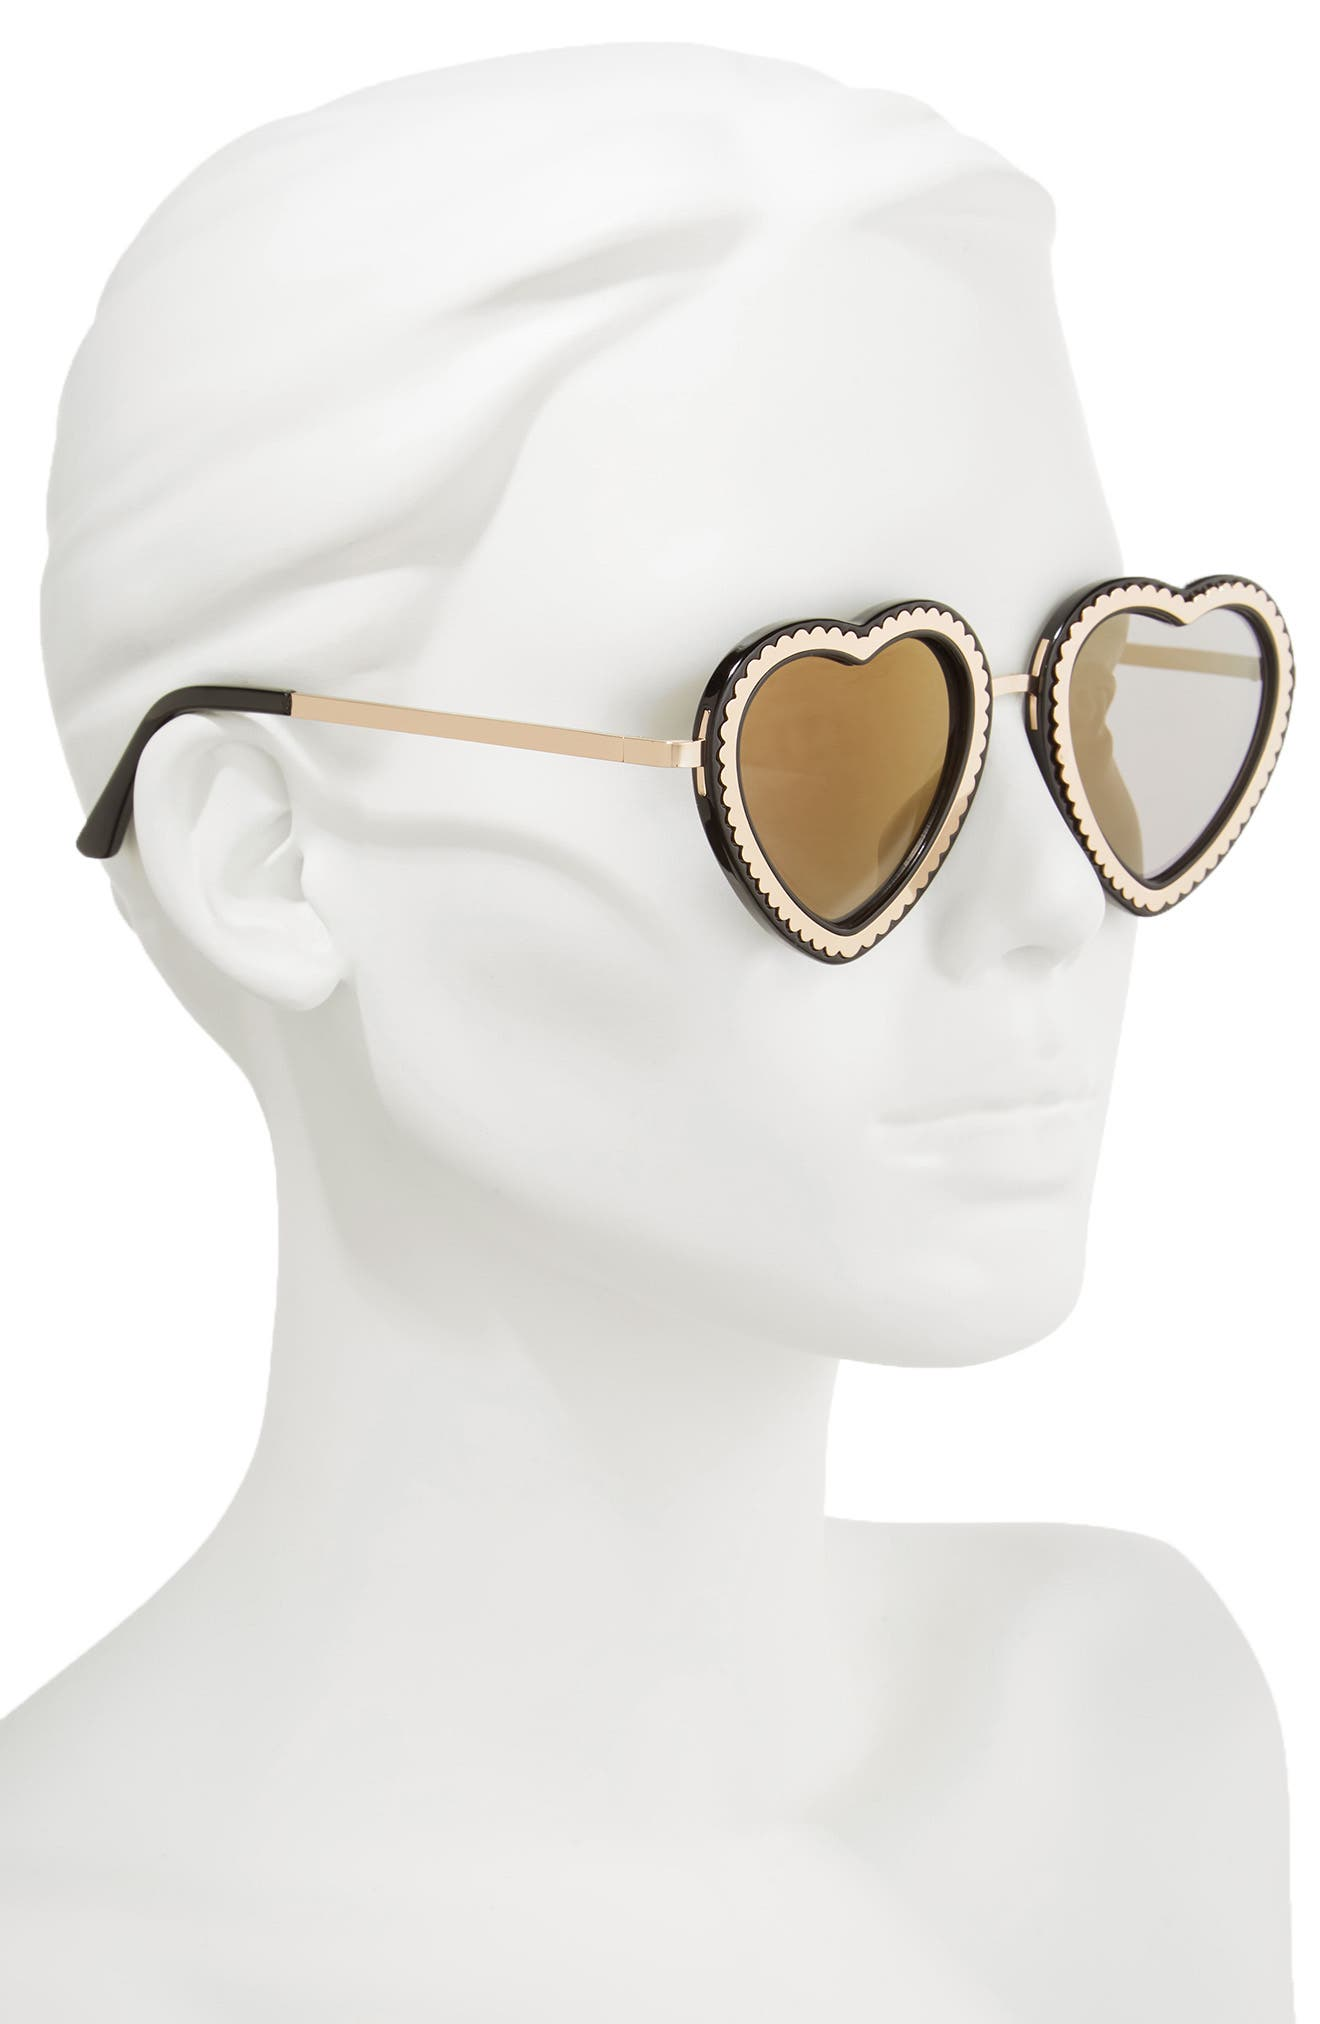 61mm Mirrored Heart Sunglasses,                             Alternate thumbnail 2, color,                             GOLD/ BLACK